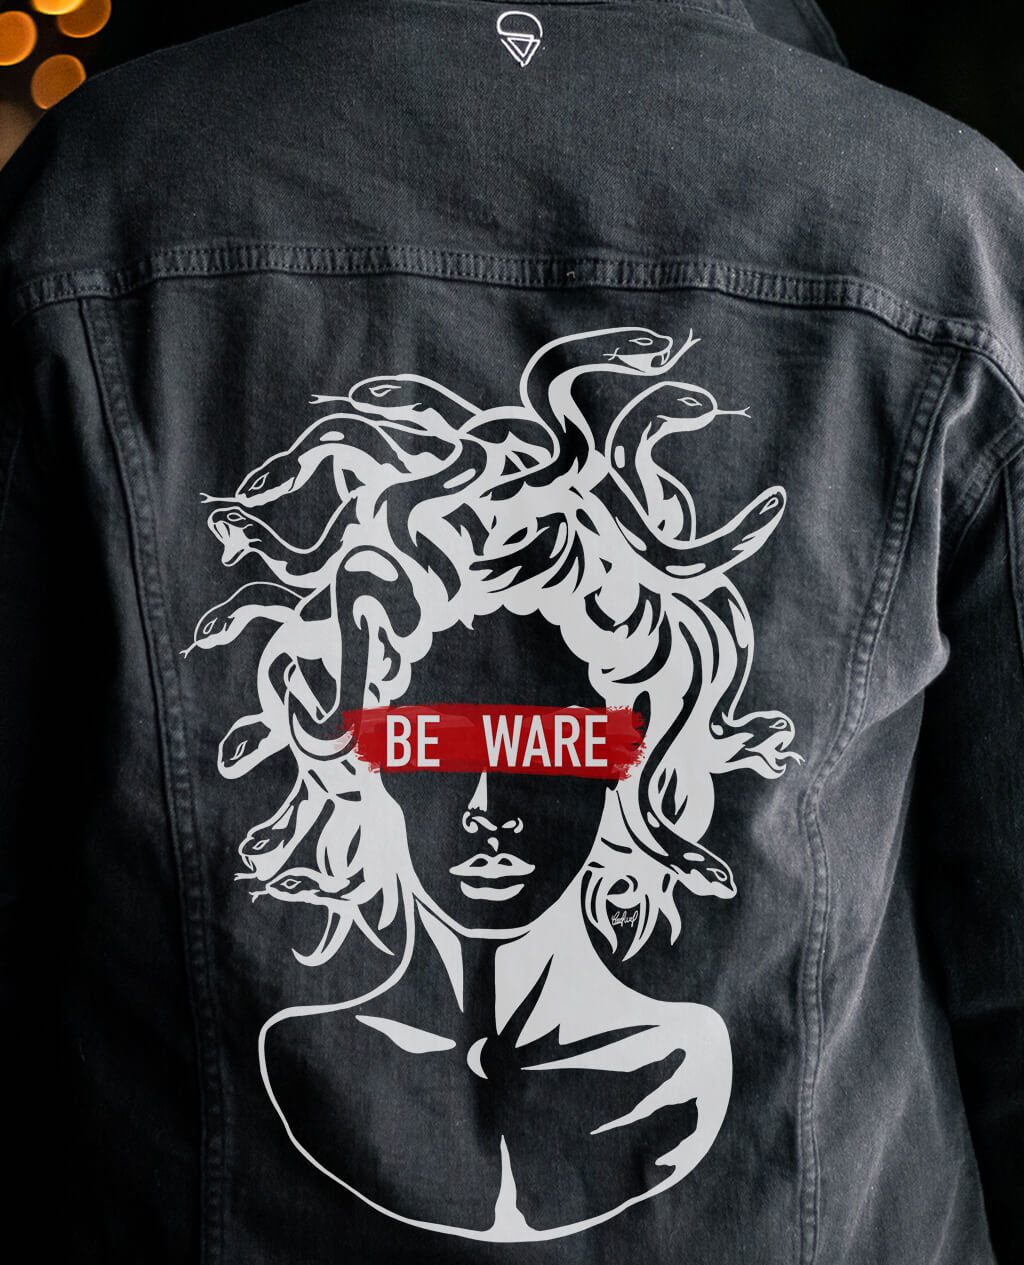 BE WARE